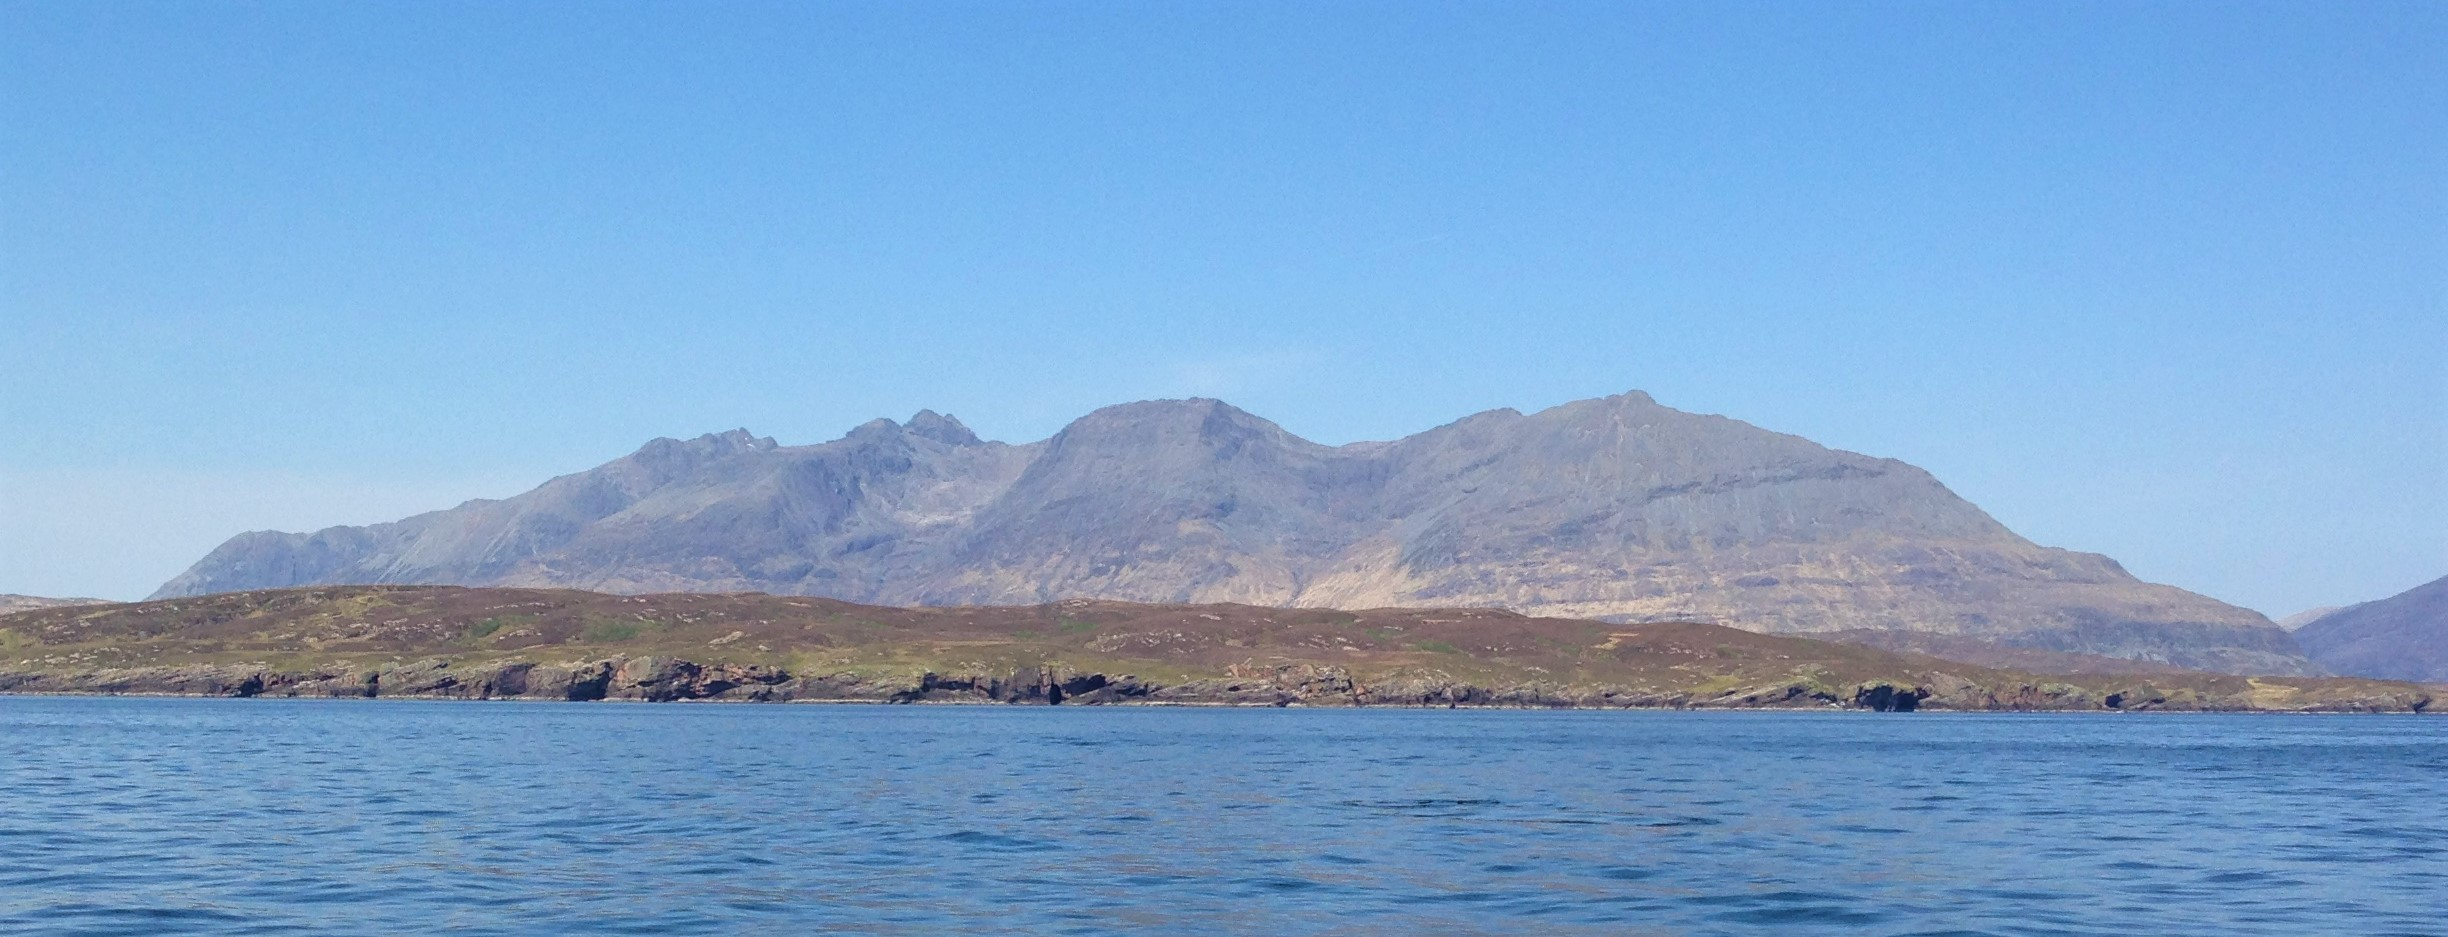 A photo from a boat showing the mountains of the isle of Rum just before a surprise sighting of whales